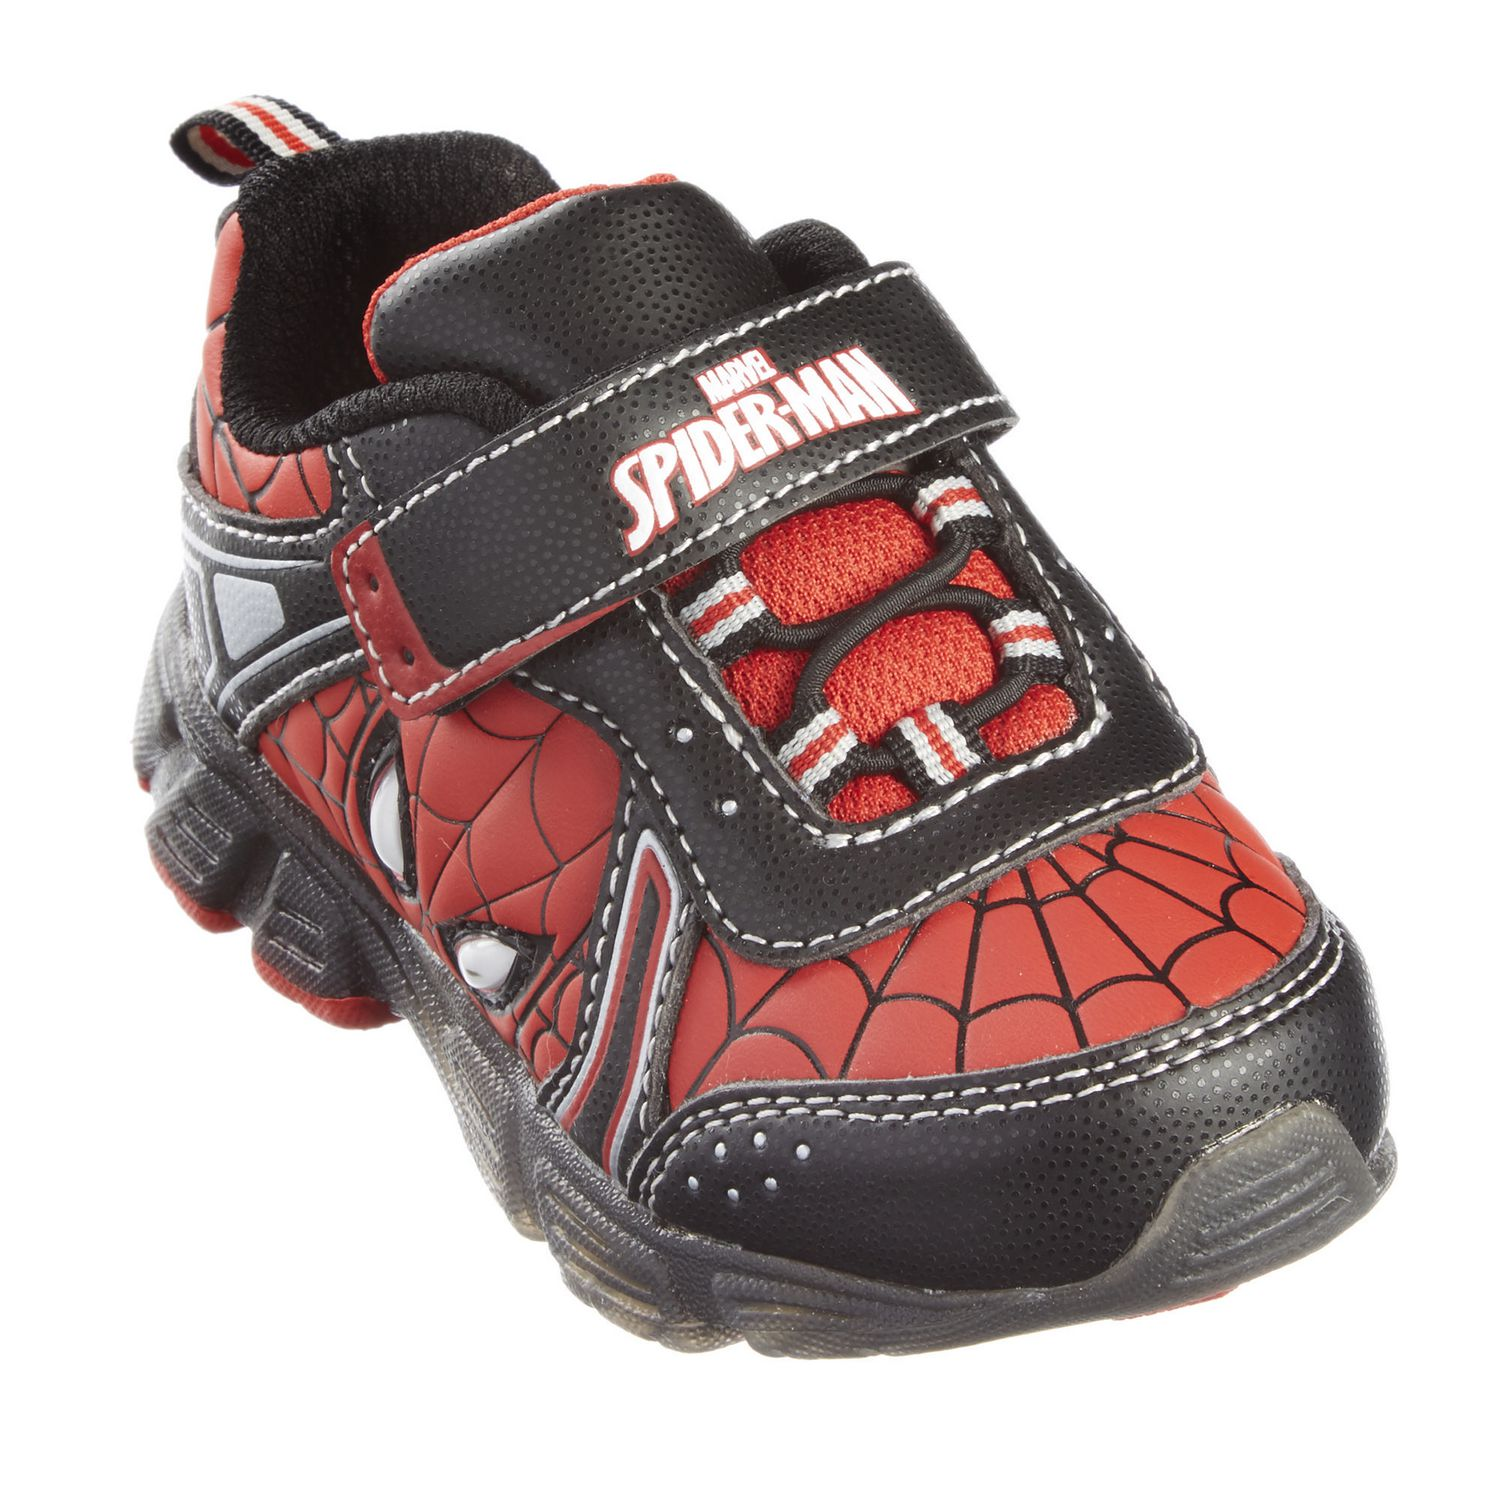 2d92ab63d6f Marvel Spiderman Toddler Boys' Athletic Shoes | Walmart Canada